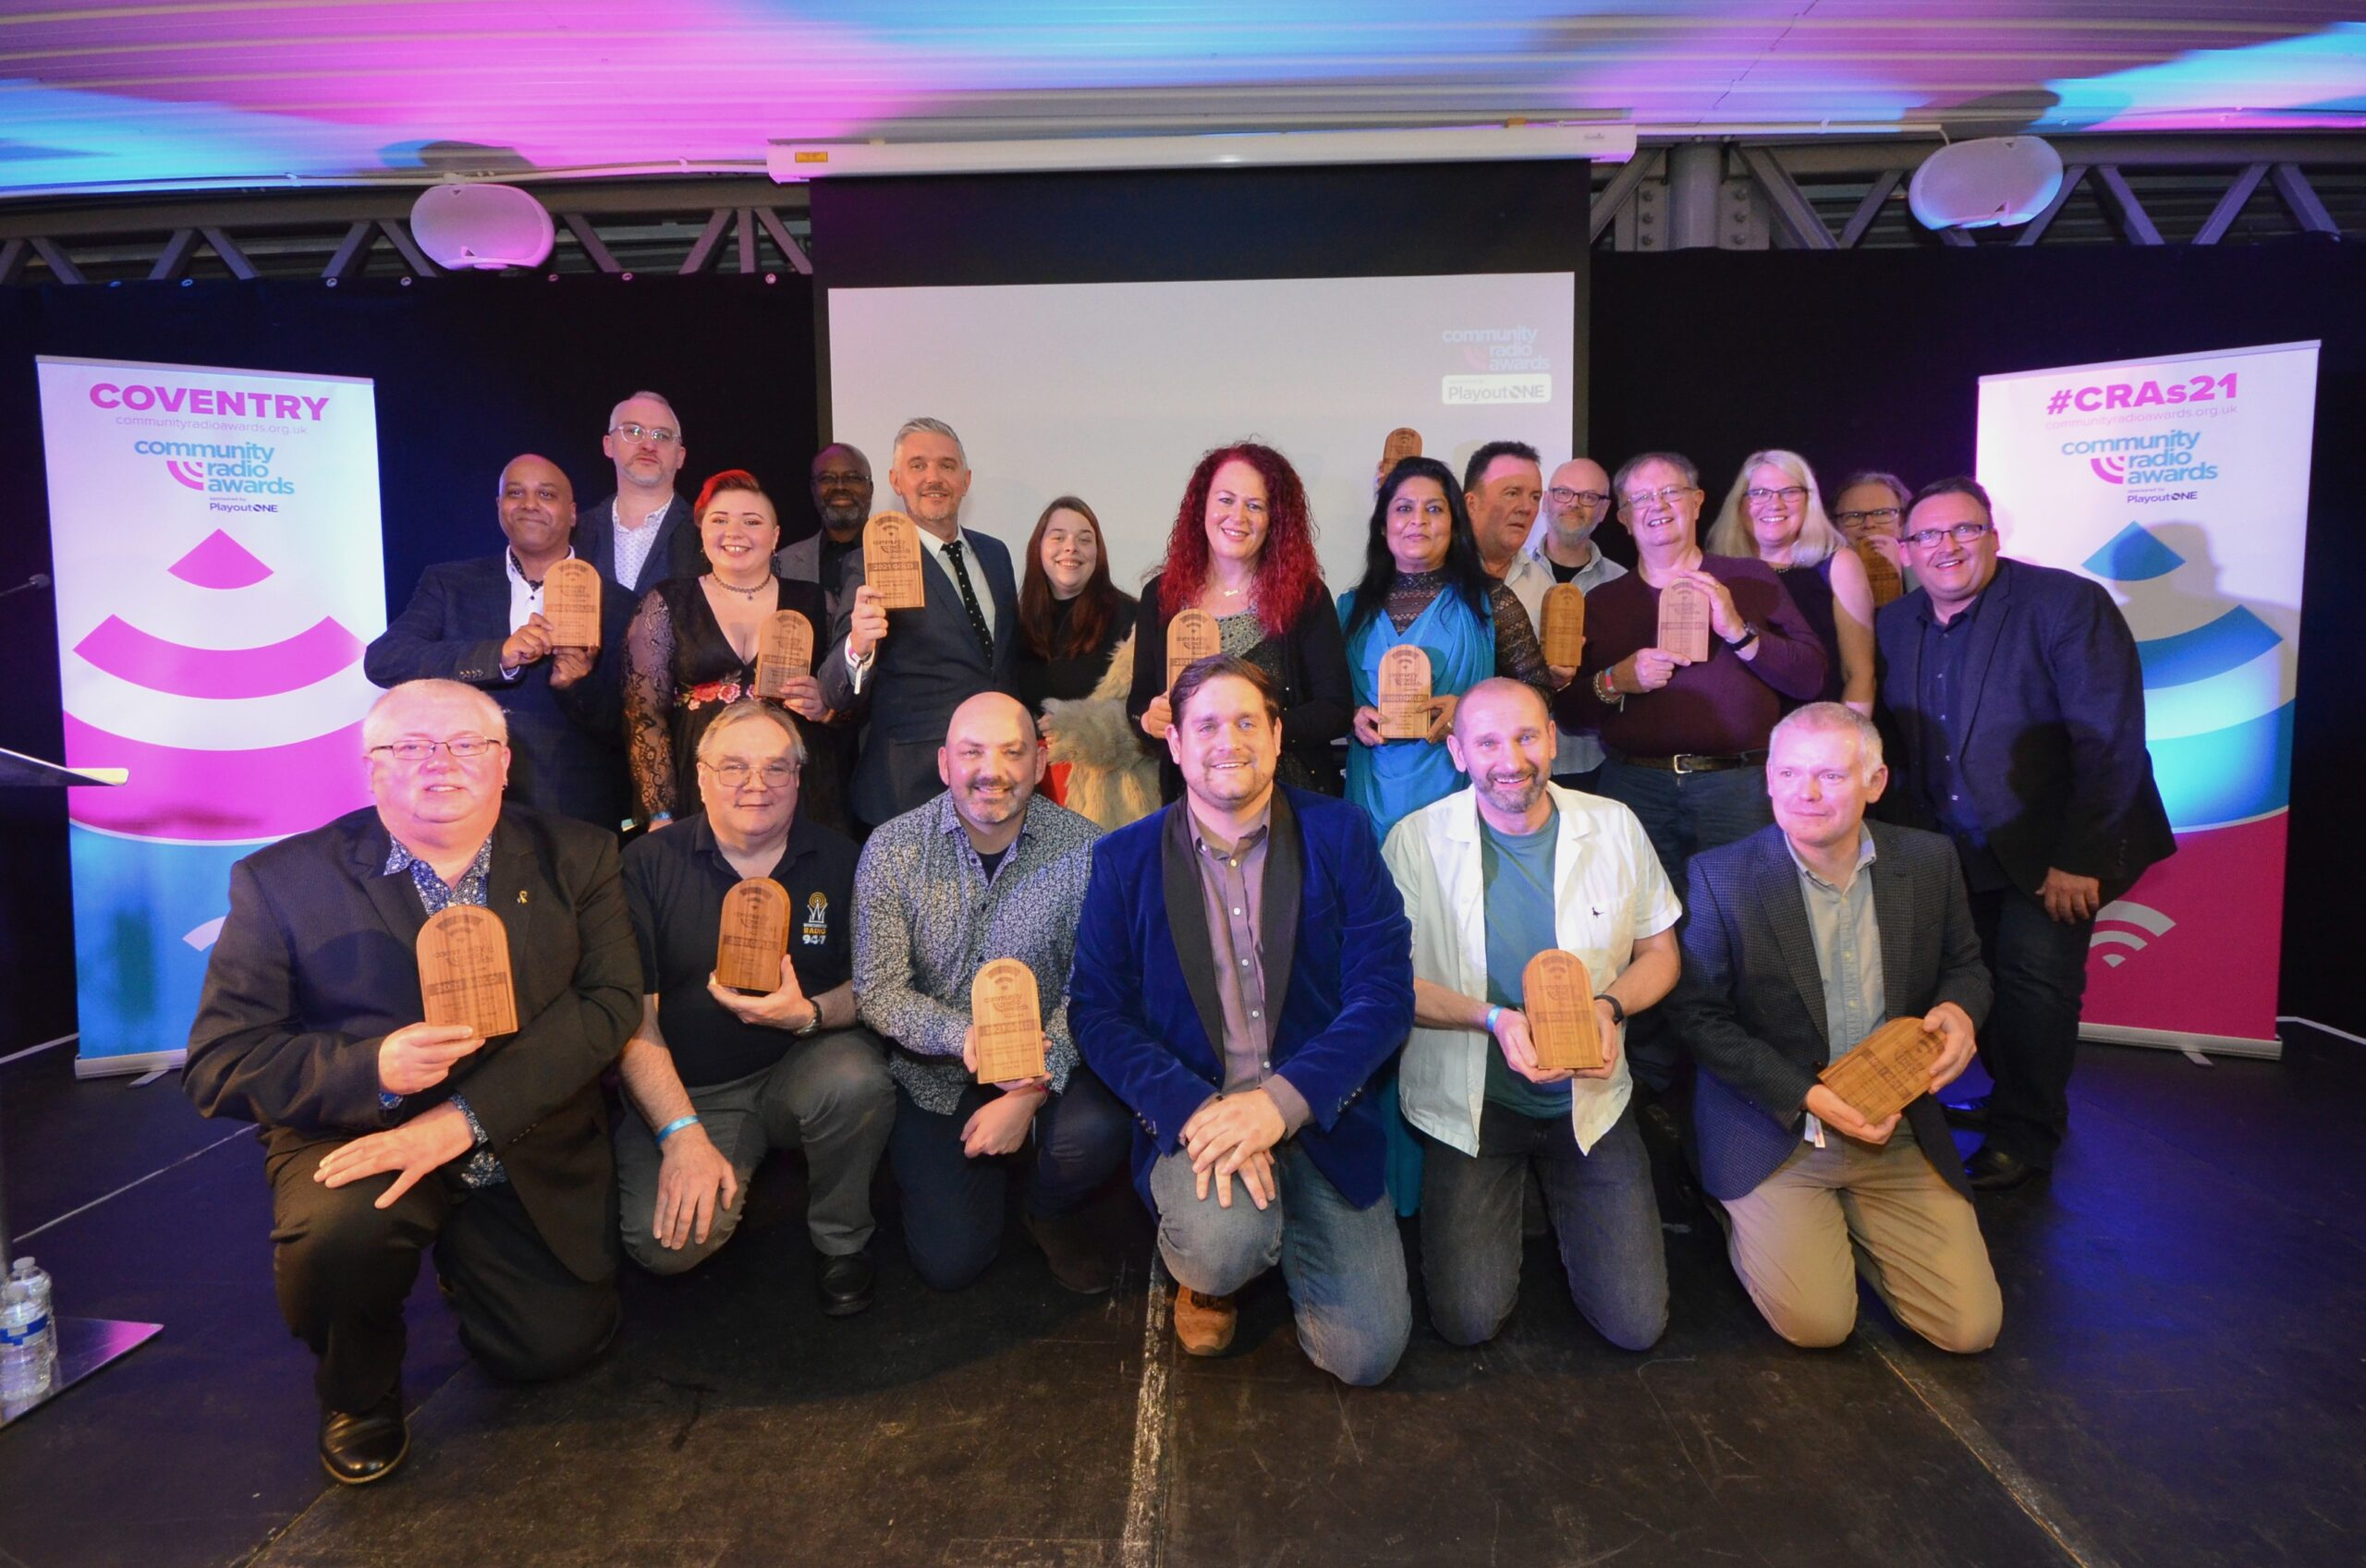 All the winners from the Community Radio Awards 2021